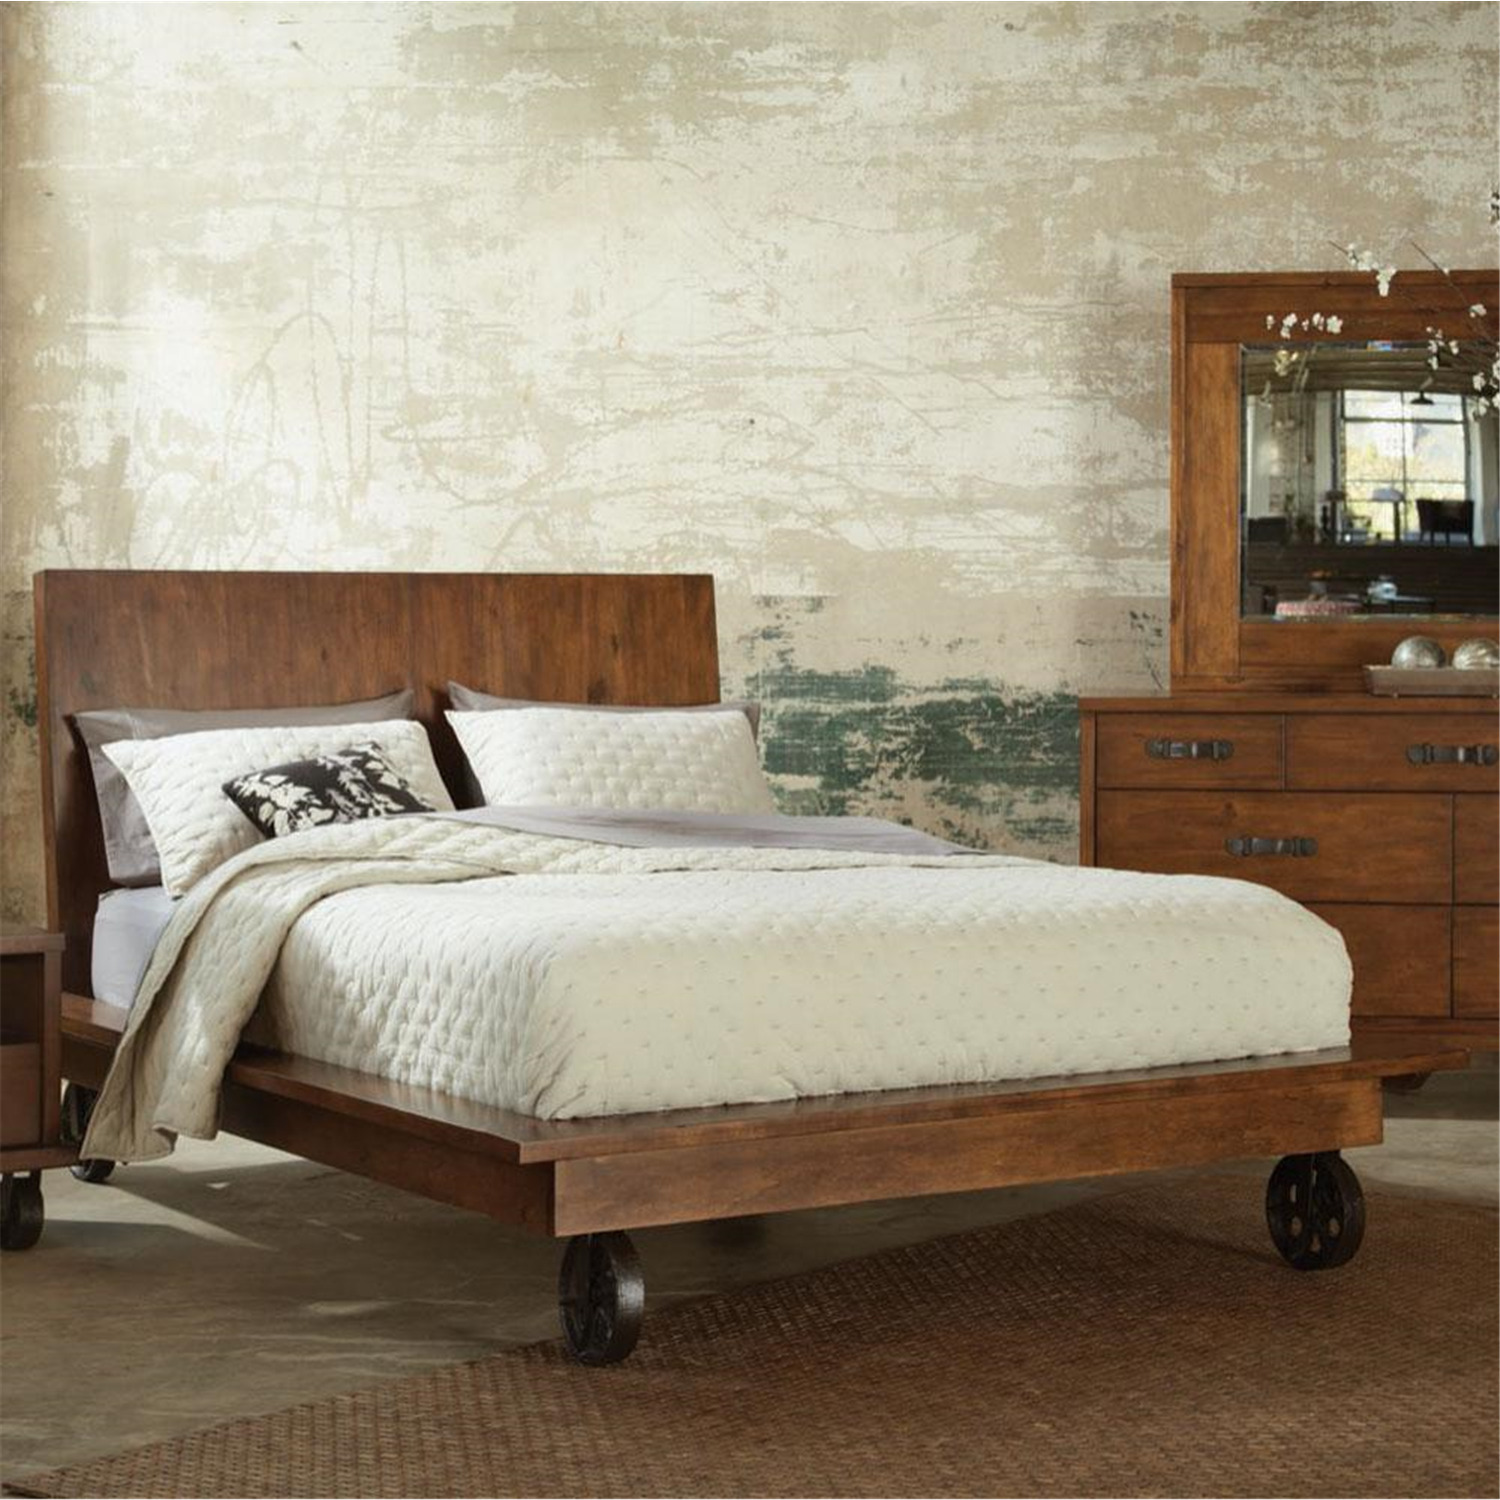 Sitcom kaitlyn california king bed by oj commerce California king beds